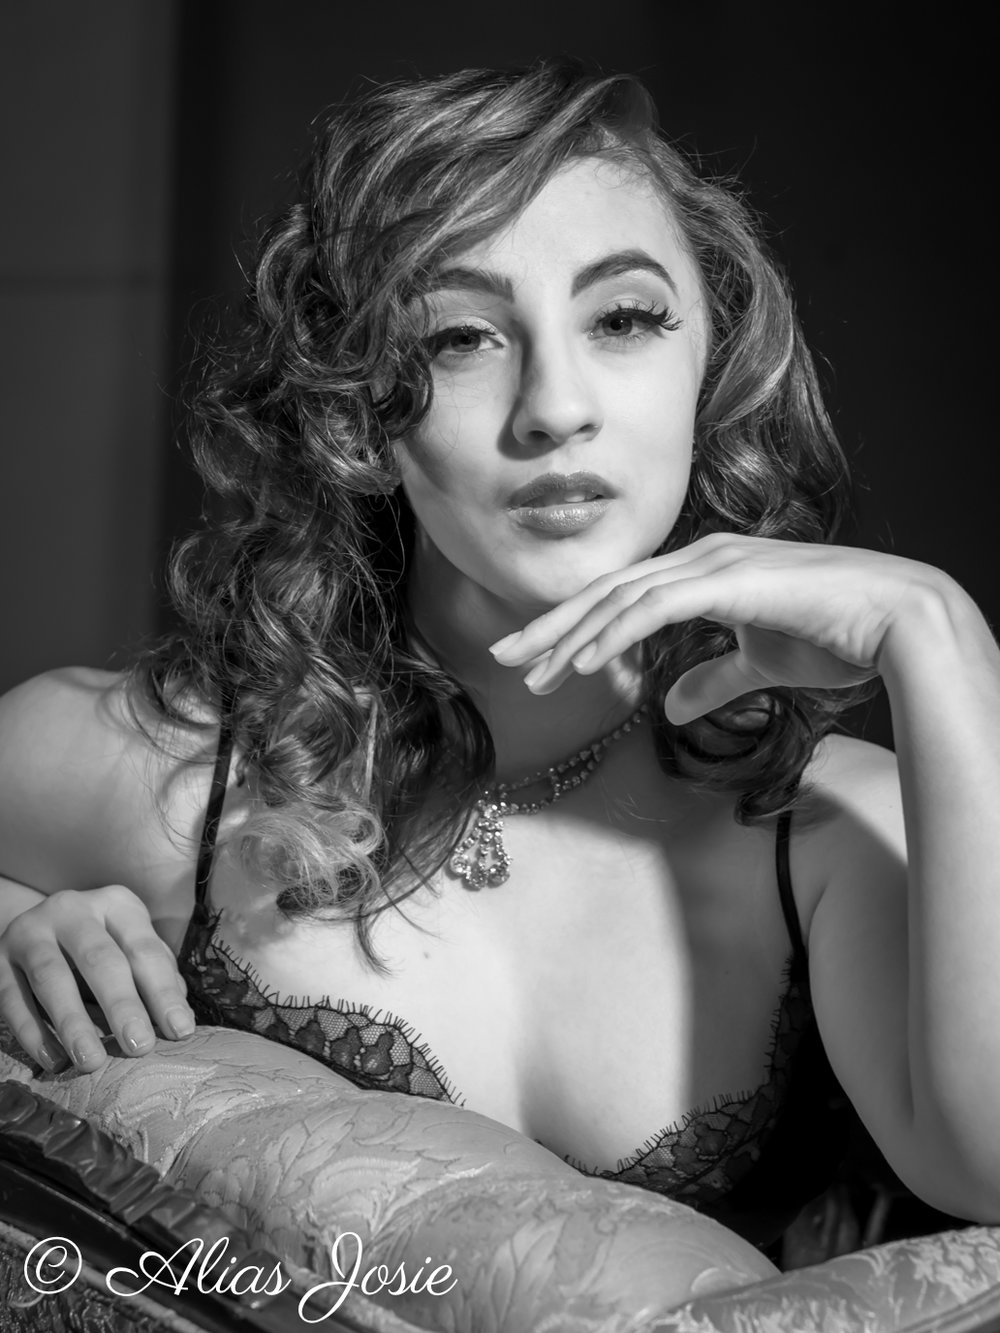 MOVIE STAR  - Wardrobe and Concept ConsultationHair and MakeupPosing Coach2 Looks Videography + Photography10 Edited Still PhotosEdited Boudoir Video (aprox 45 sec)$2495